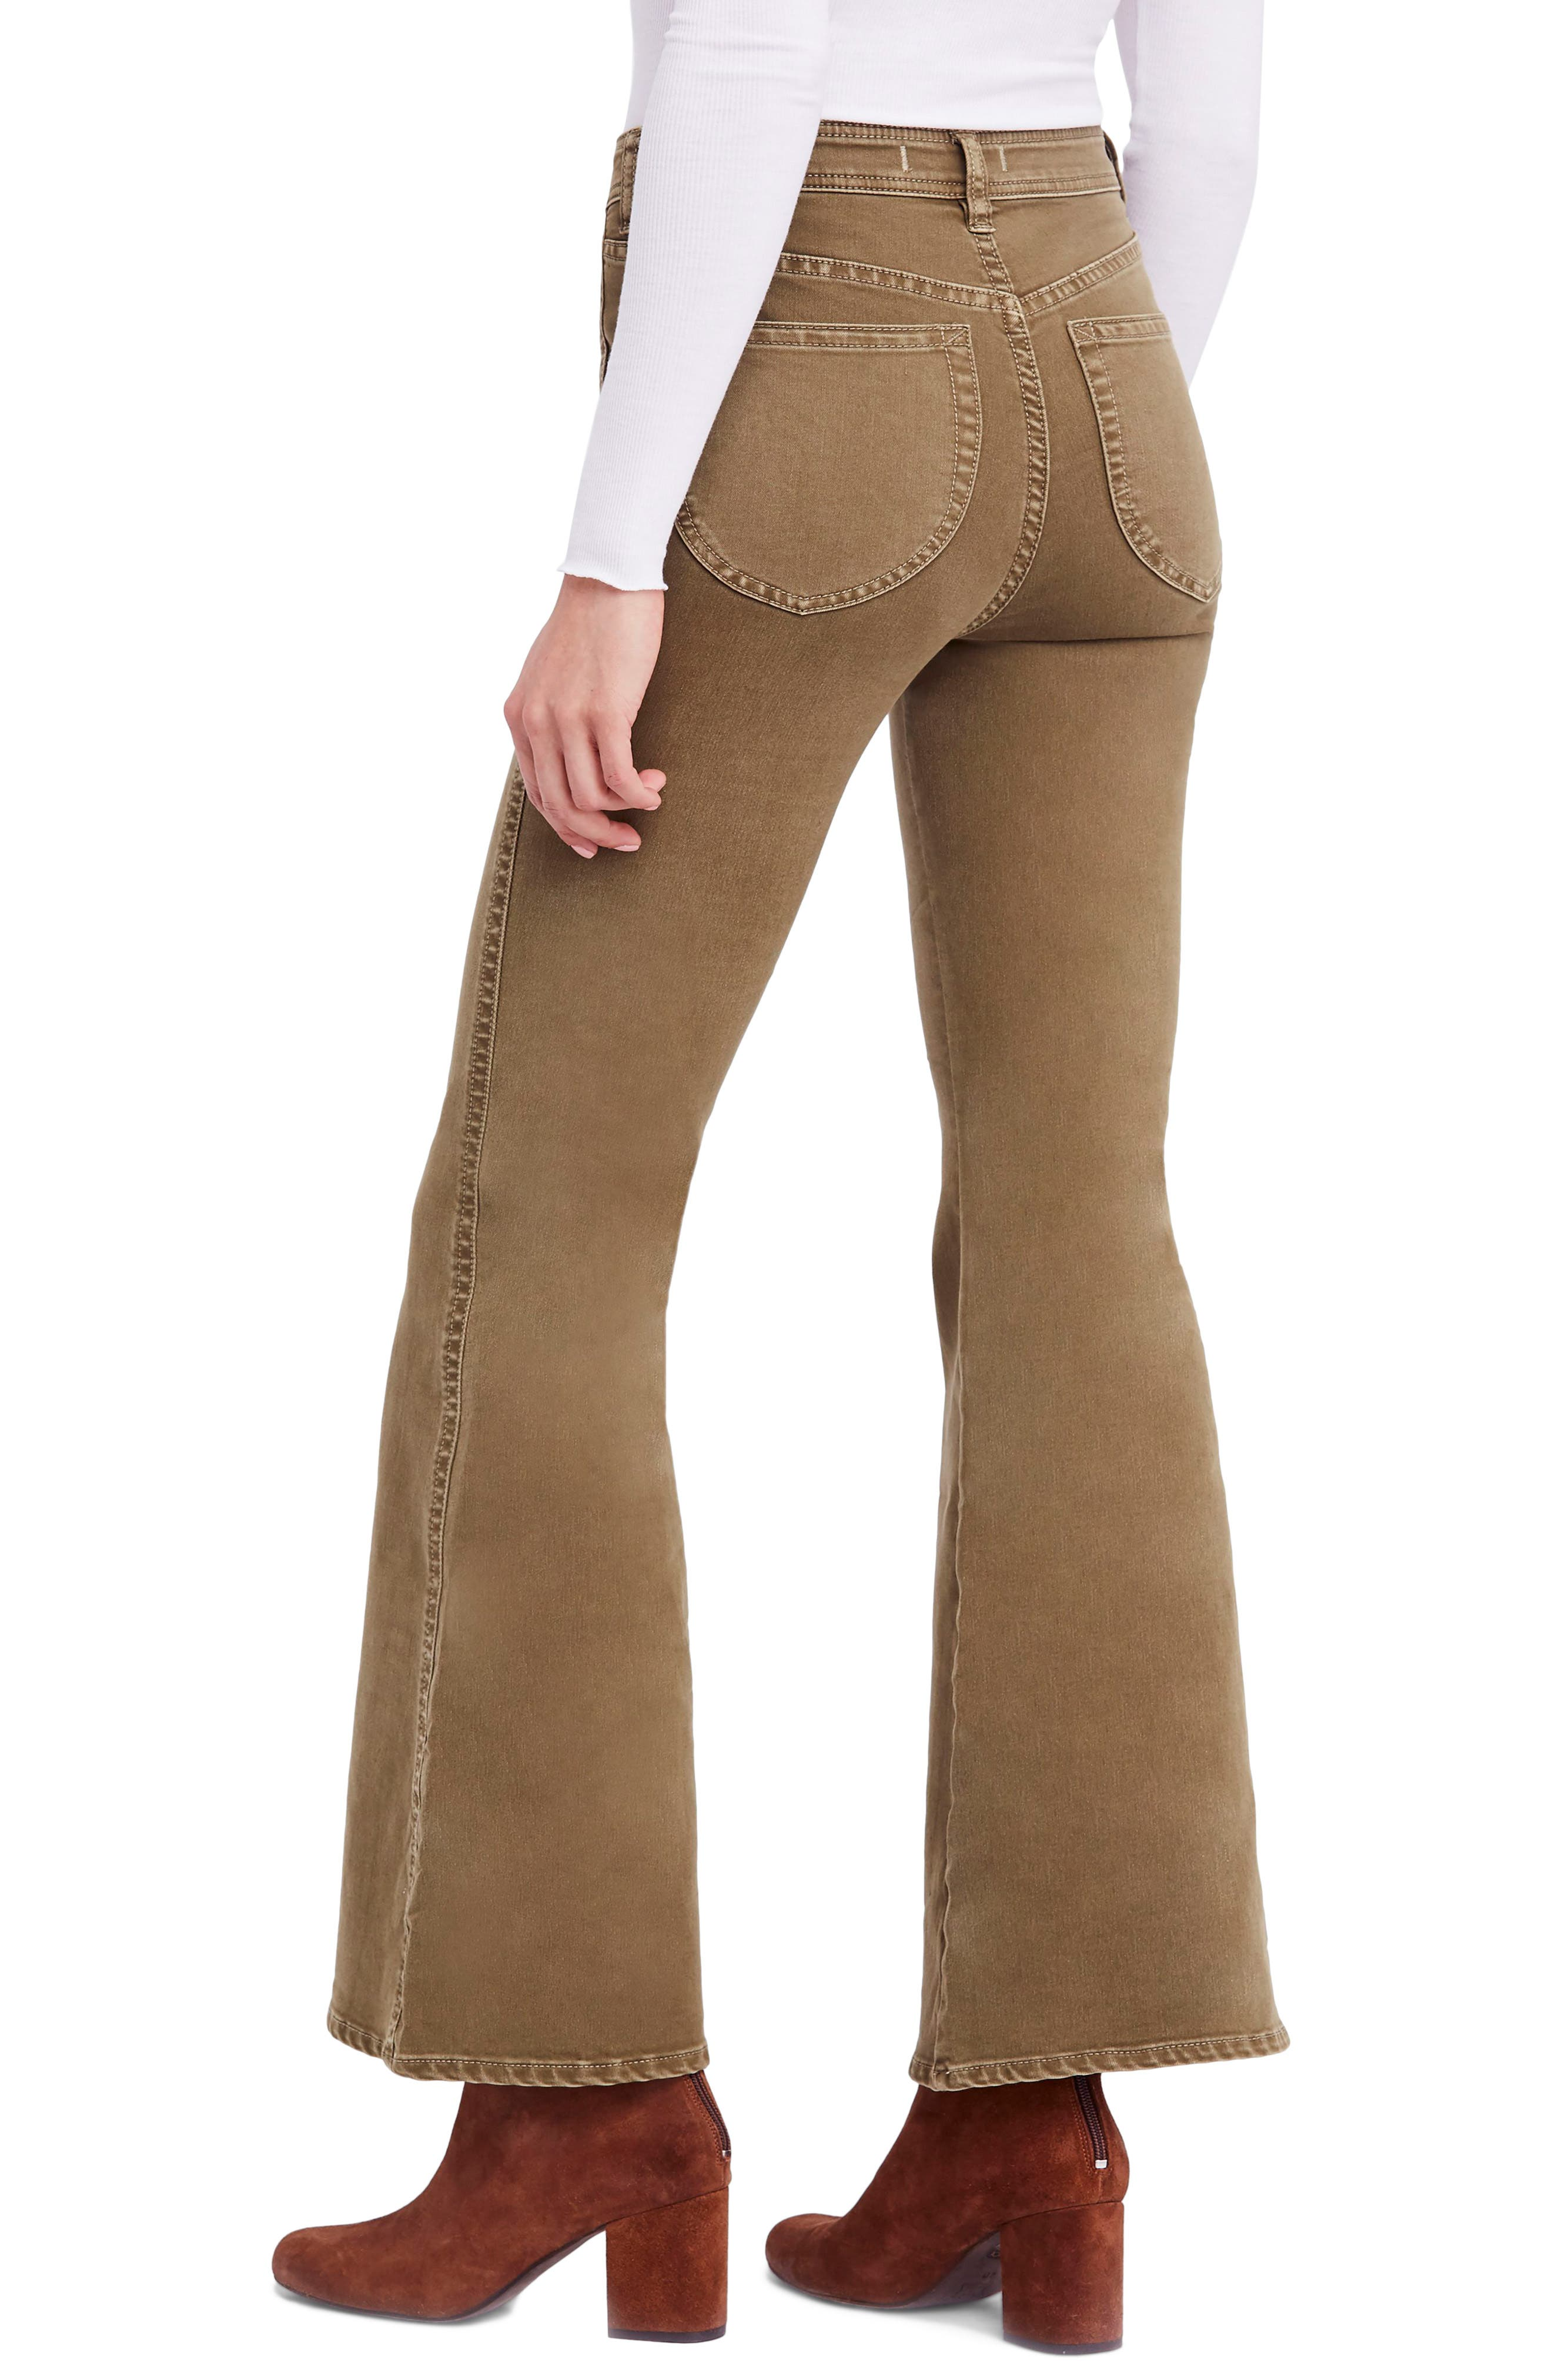 FREE PEOPLE,                             Brooke Flare Jeans,                             Alternate thumbnail 2, color,                             200